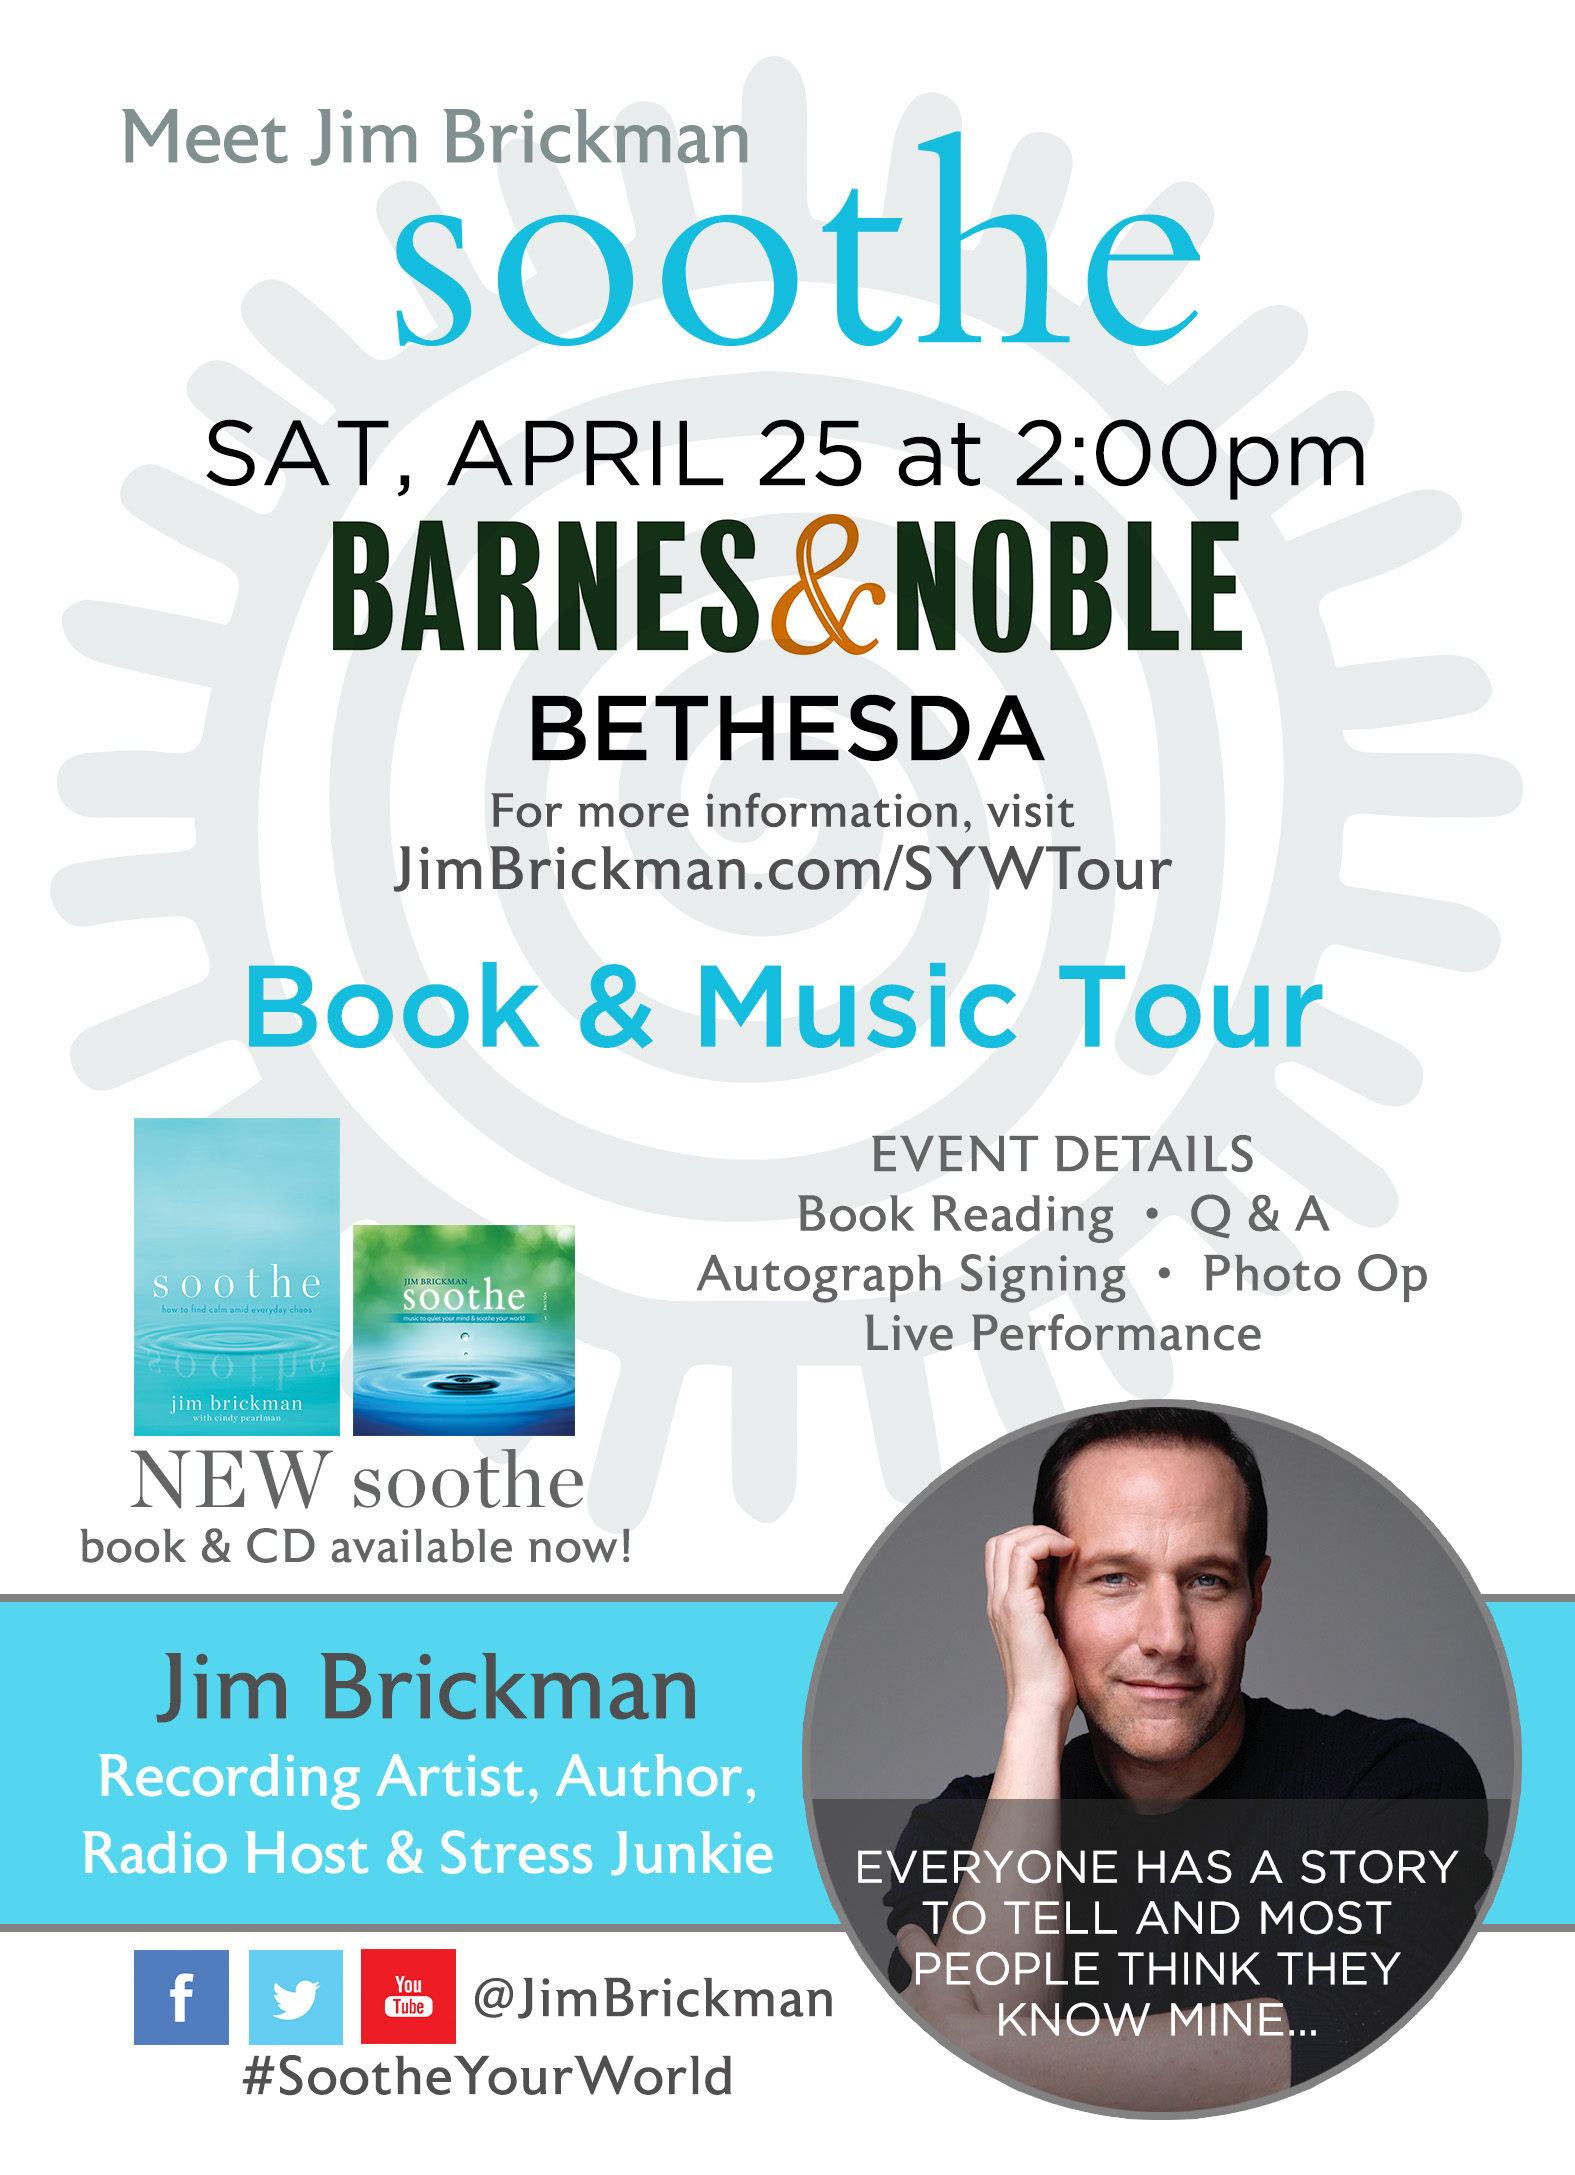 Yamaha Artist Jim Brickman at Barnes & Noble in Bethesda